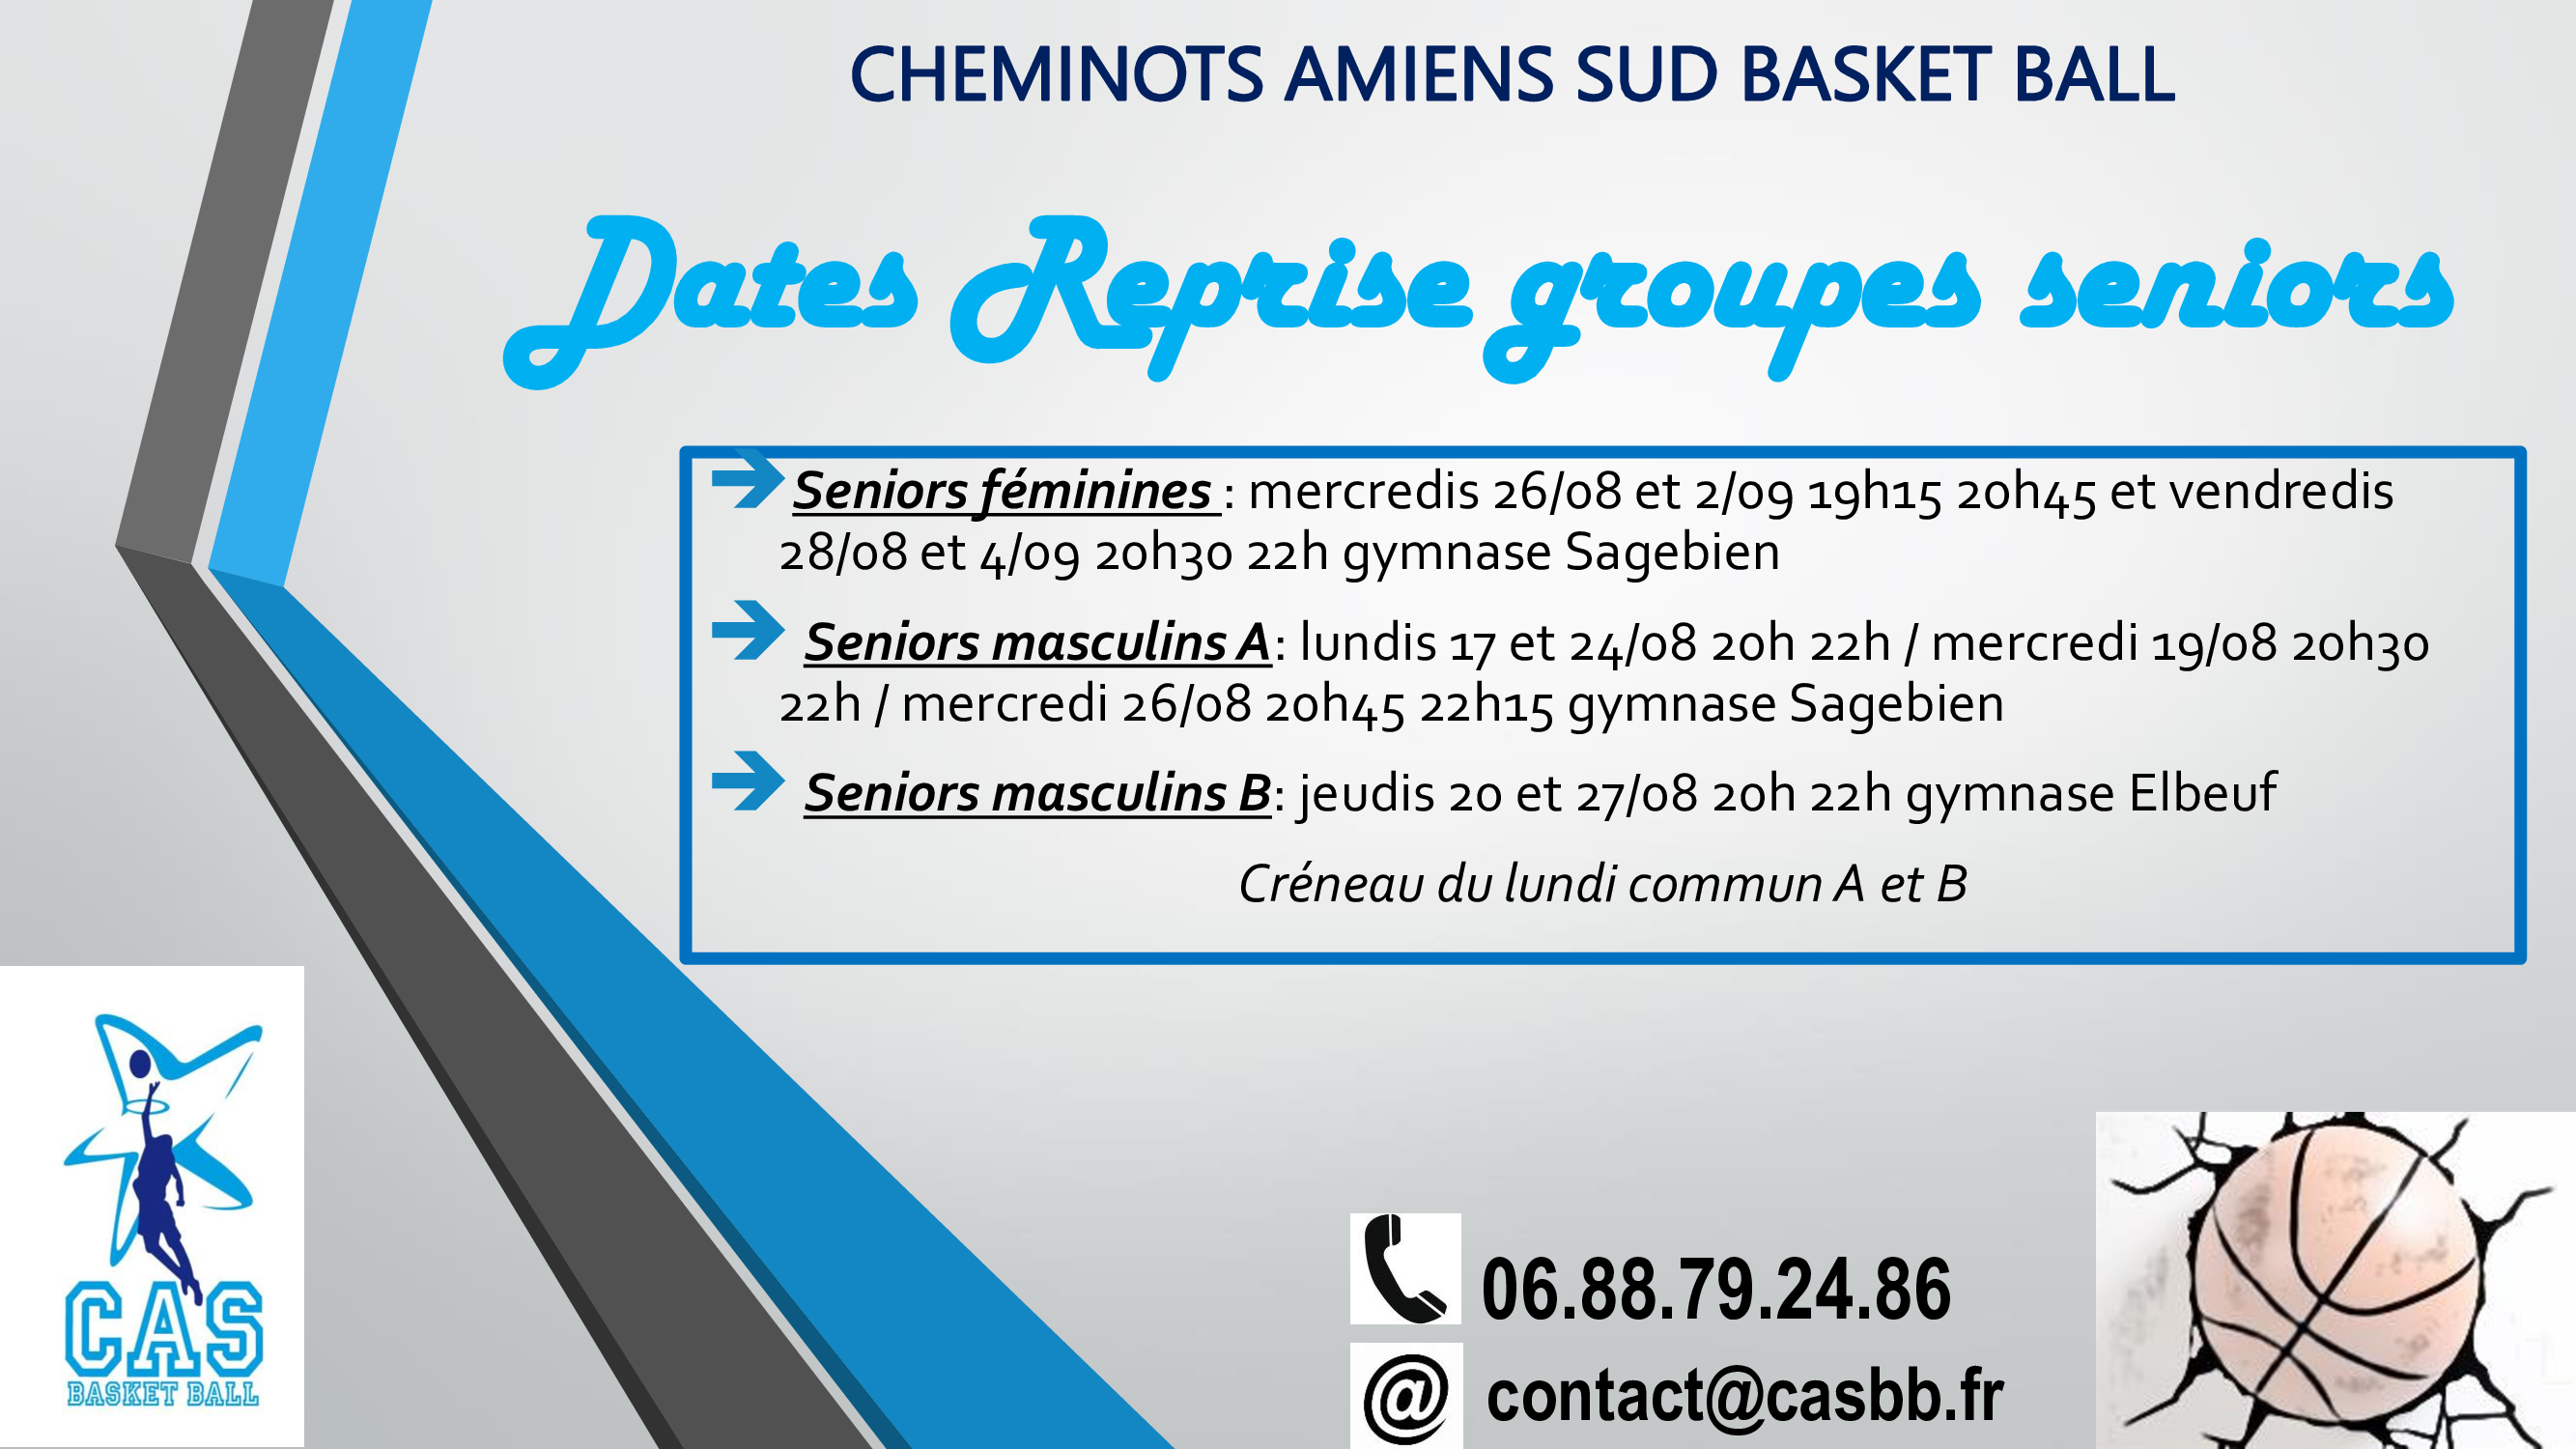 Dates-Reprise-groupes-seniors